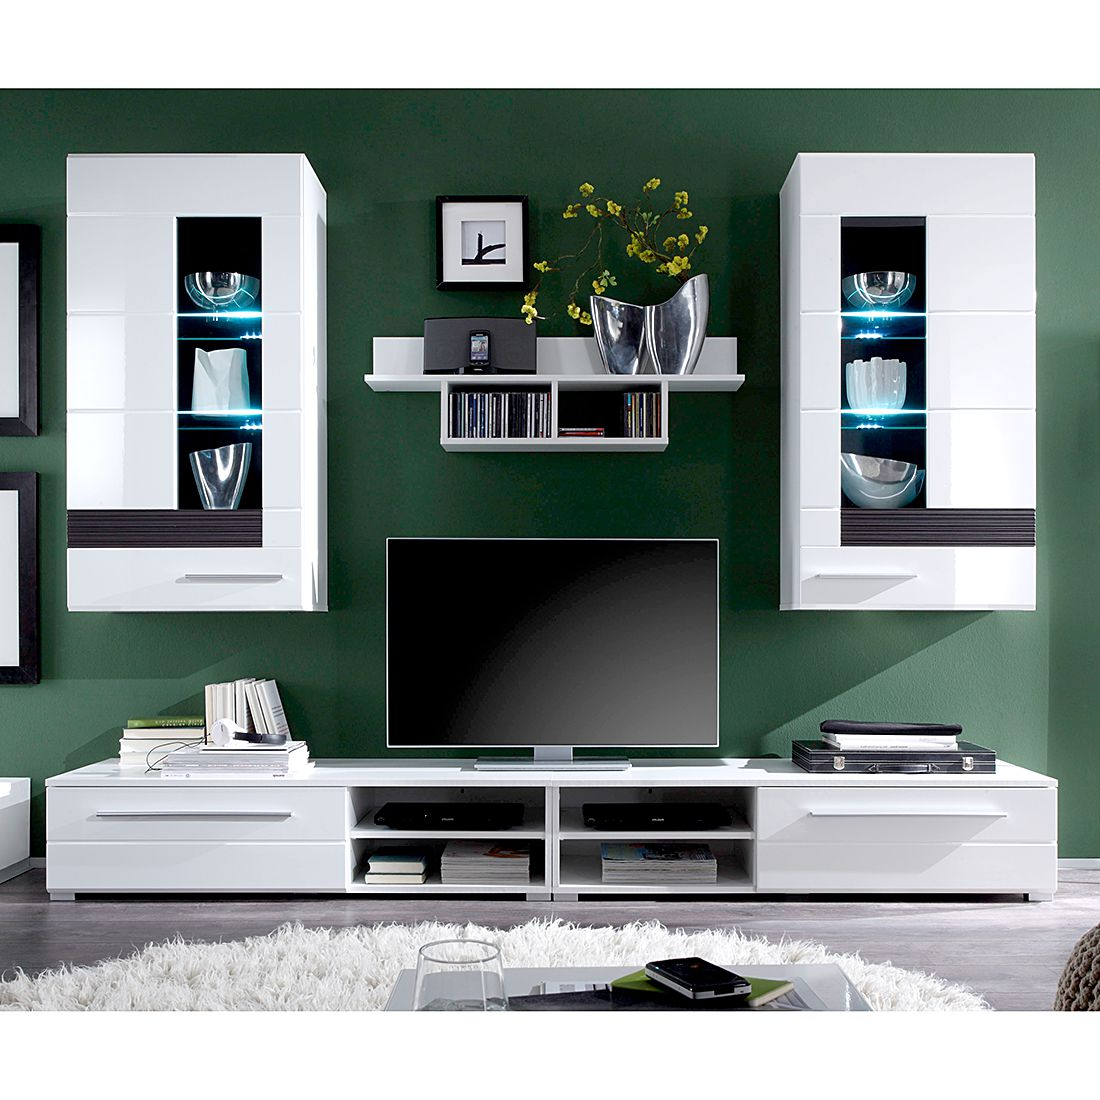 wohnwand meeno ii 4 teilig inkl beleuchtung wei hochglanz melinga eiche dekor. Black Bedroom Furniture Sets. Home Design Ideas